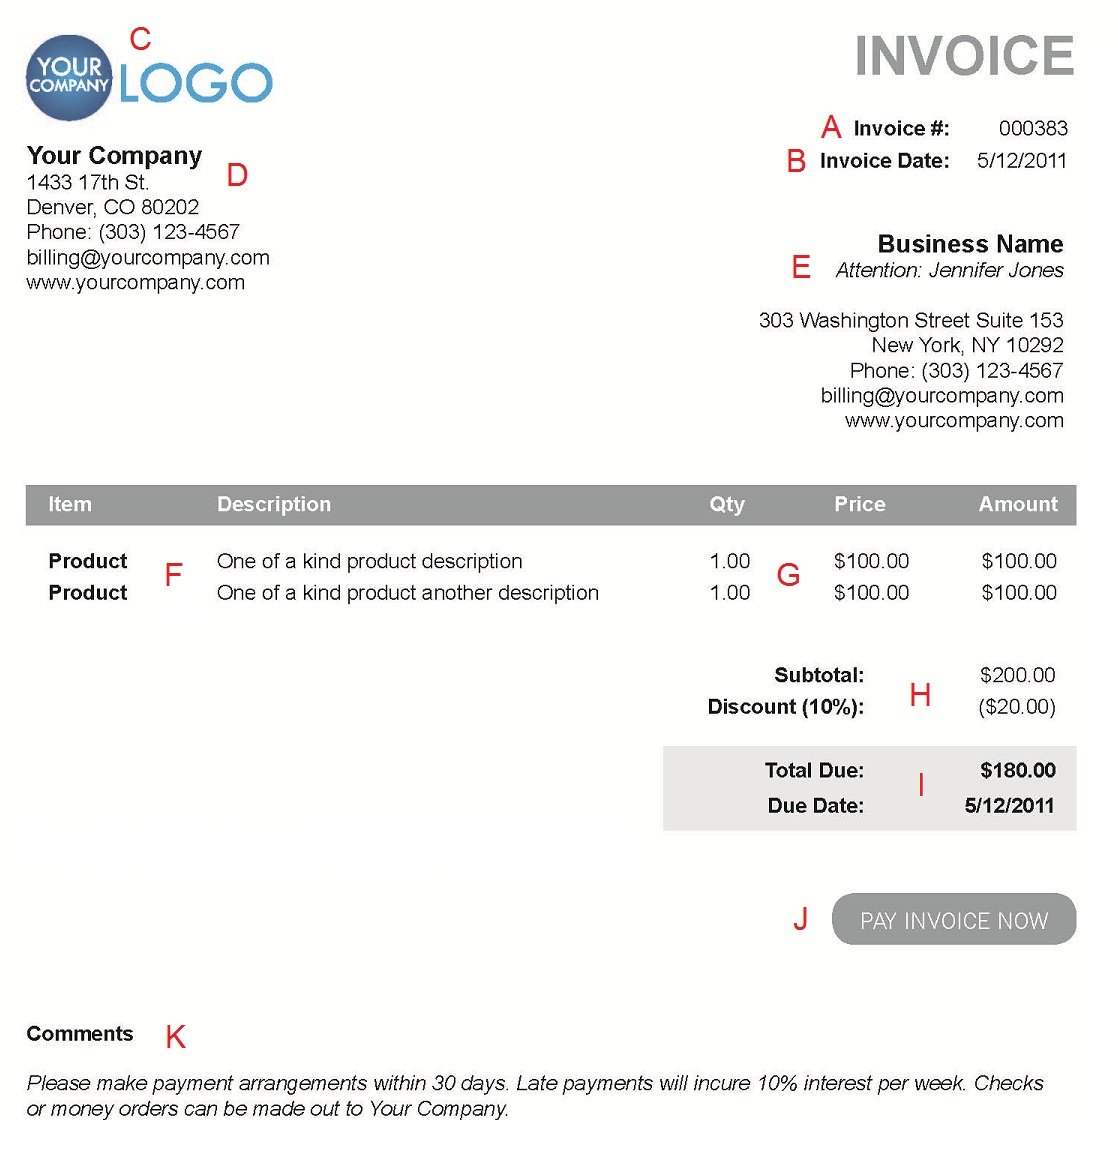 Floobydustus  Remarkable The  Different Sections Of An Electronic Payment Invoice With Heavenly A  With Appealing Google Docs Invoice Template Also Invoice Template Excel In Addition Invoice Meaning And What Is An Invoice Number As Well As Paypal Invoice Fee Additionally Online Invoice From Paysimplecom With Floobydustus  Heavenly The  Different Sections Of An Electronic Payment Invoice With Appealing A  And Remarkable Google Docs Invoice Template Also Invoice Template Excel In Addition Invoice Meaning From Paysimplecom